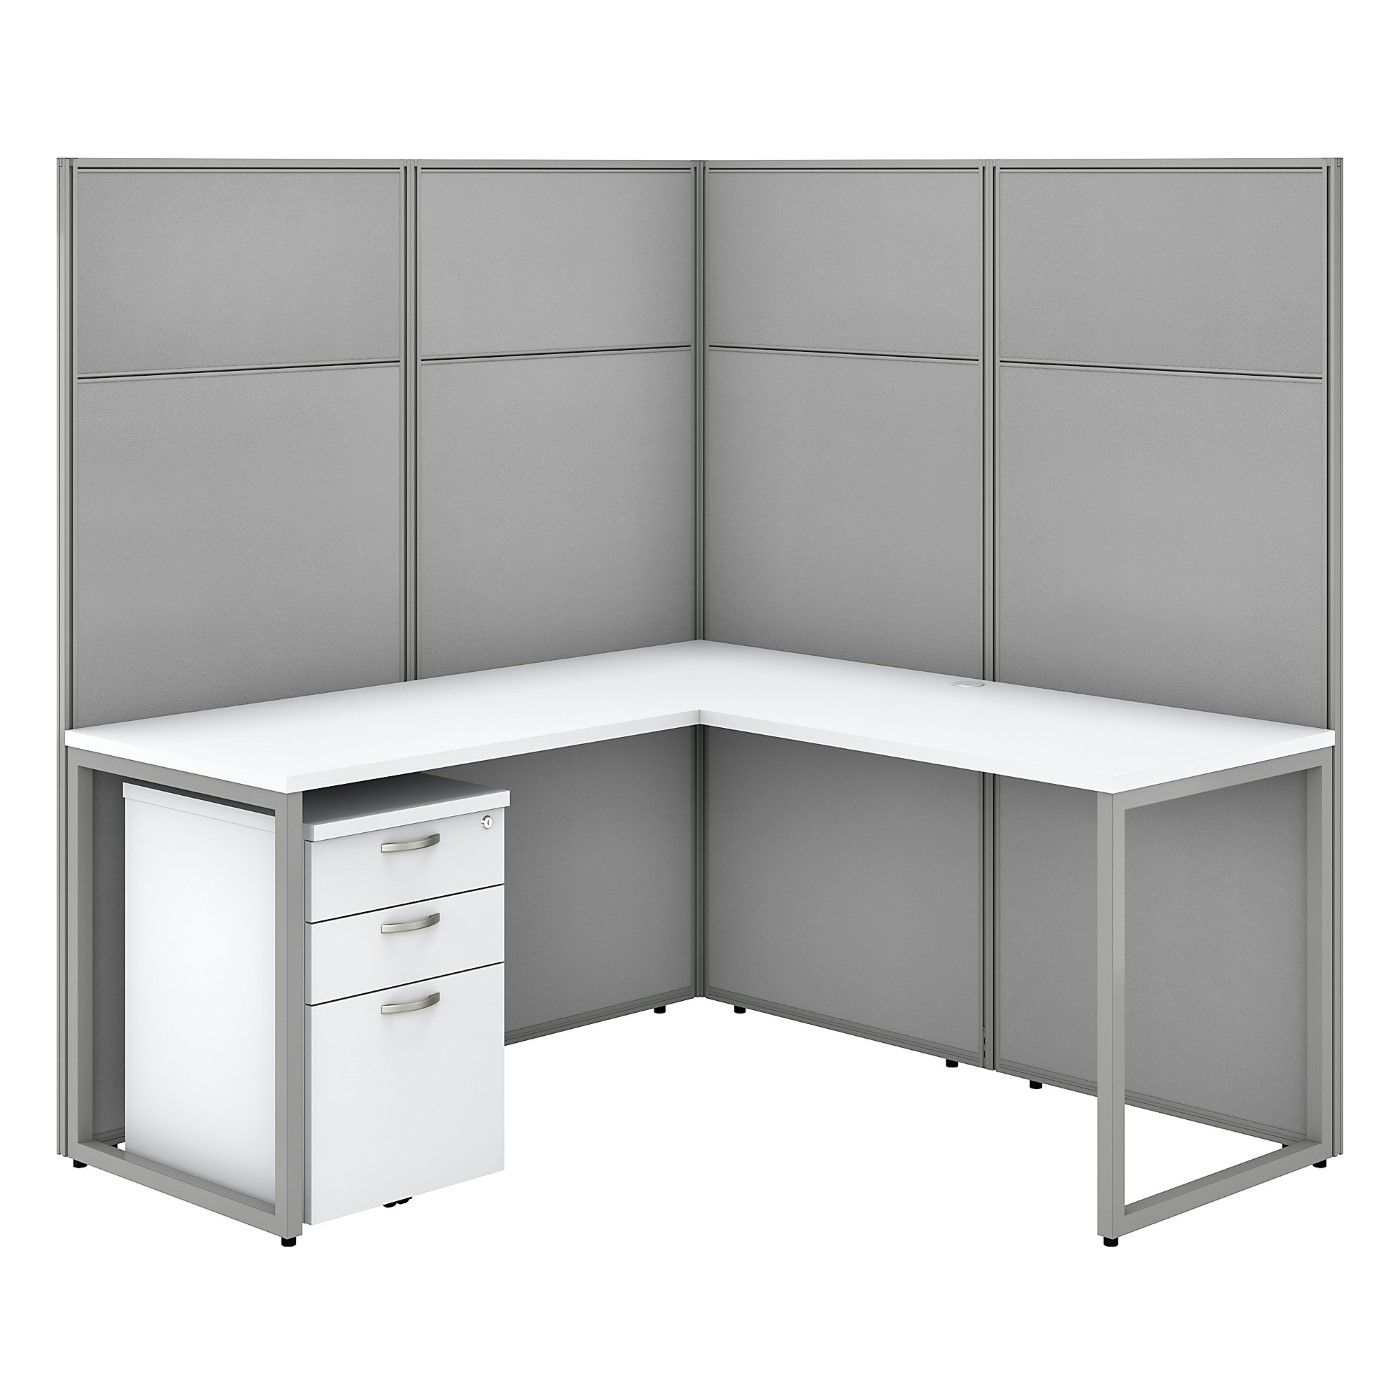 BUSH BUSINESS FURNITURE EASY OFFICE 60W L SHAPED CUBICLE DESK WITH FILE CABINET AND 66H PANELS. FREE SHIPPING SALE DEDUCT 10% MORE ENTER '10percent' IN COUPON CODE BOX WHILE CHECKING OUT. ENDS 5-31-20.